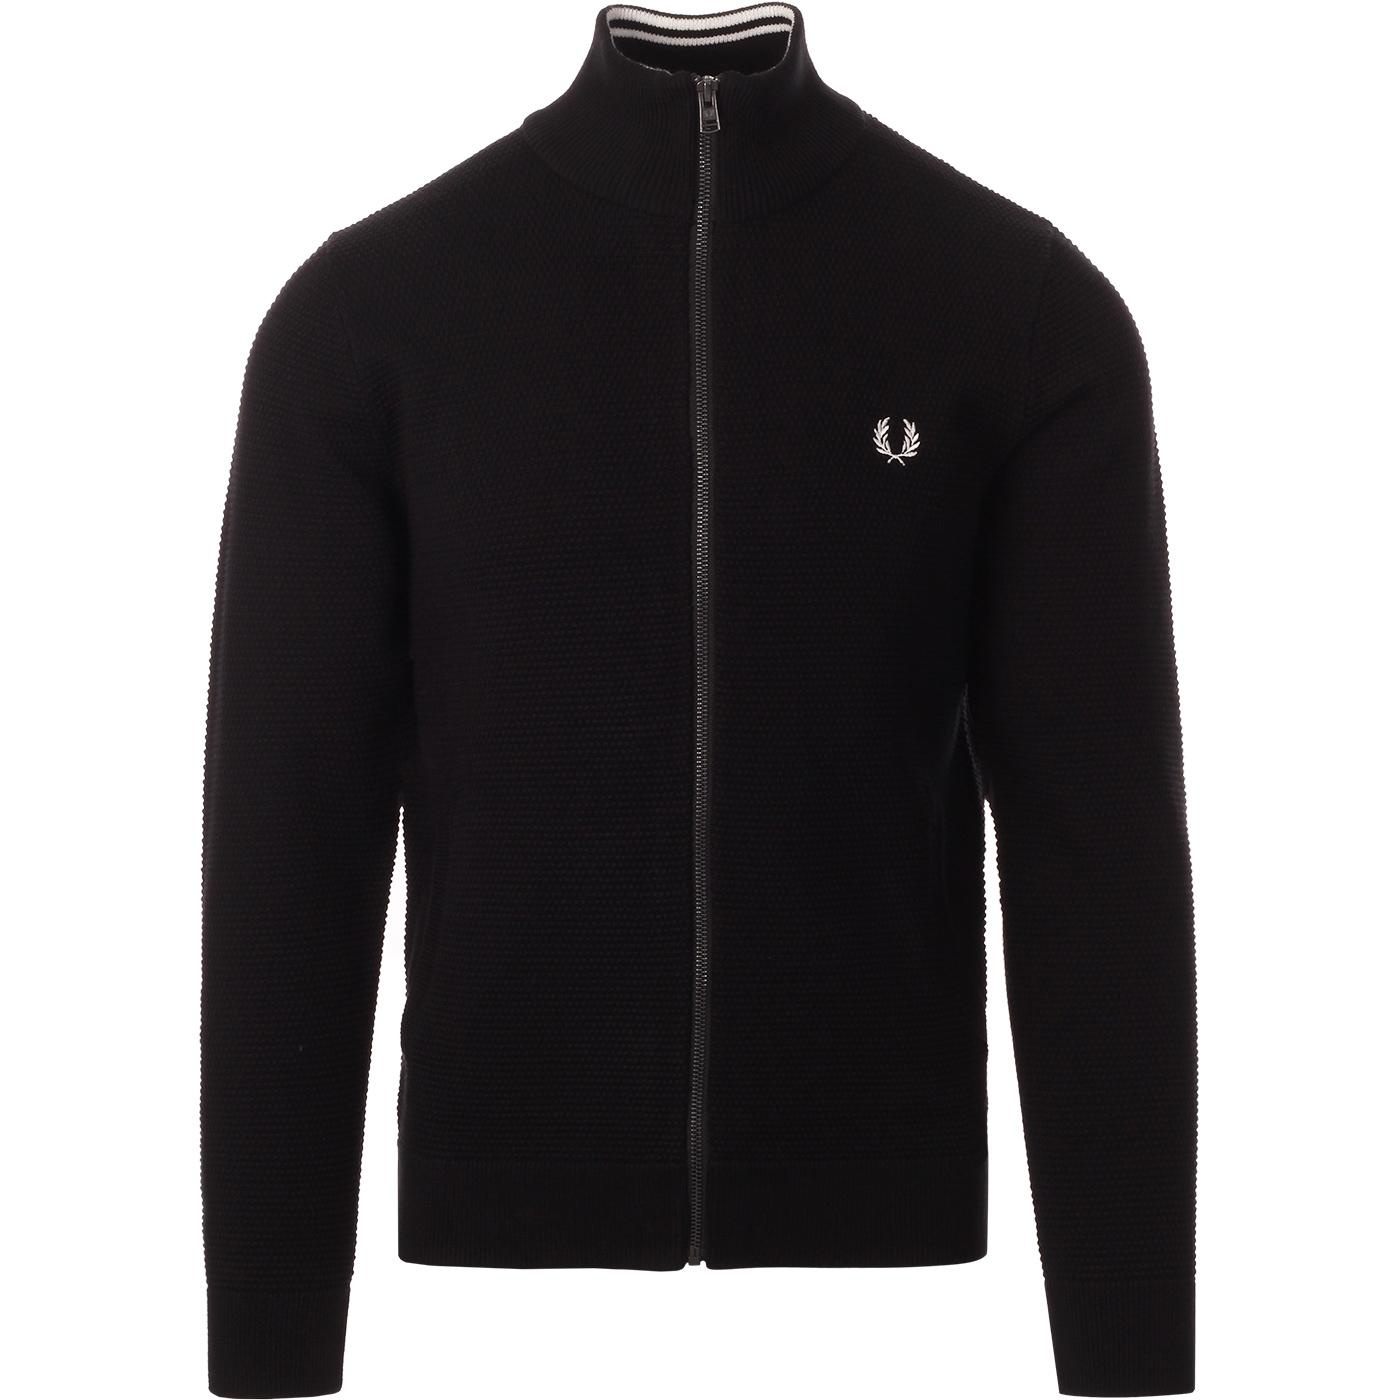 FRED PERRY Retro Waffle Texture Knit Track Jacket